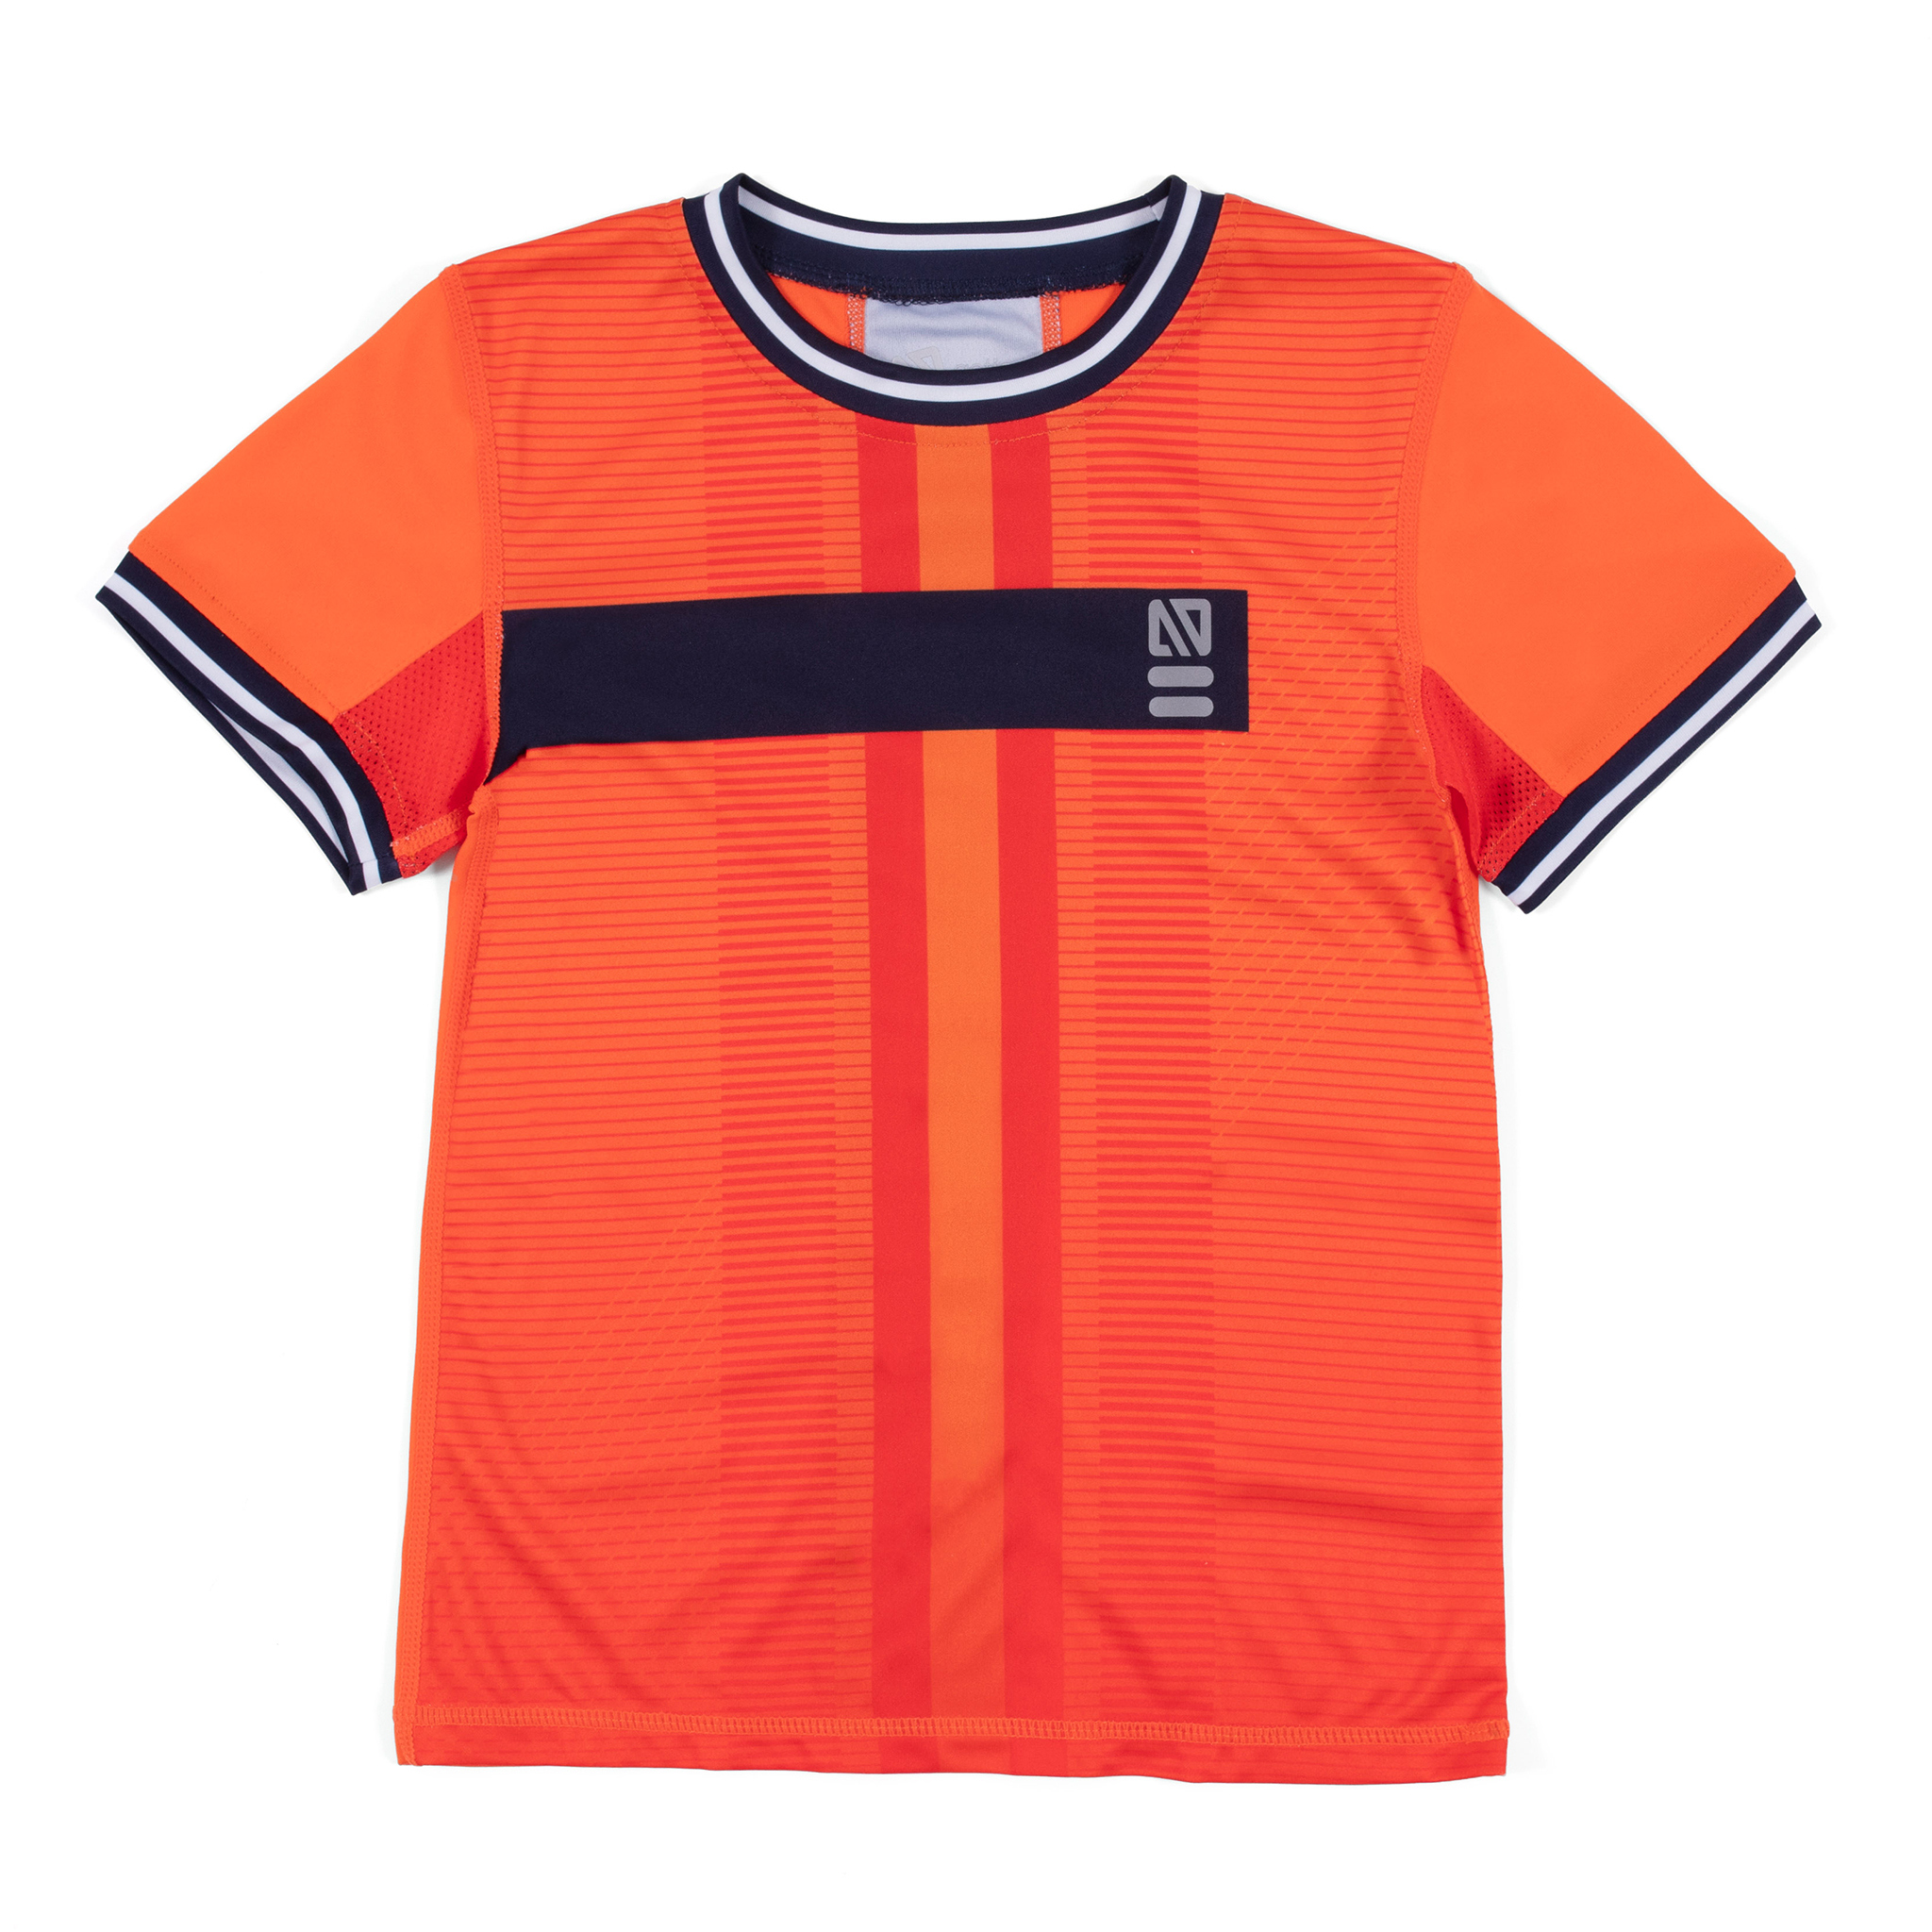 Athletic T-Shirt - Orange - Boys